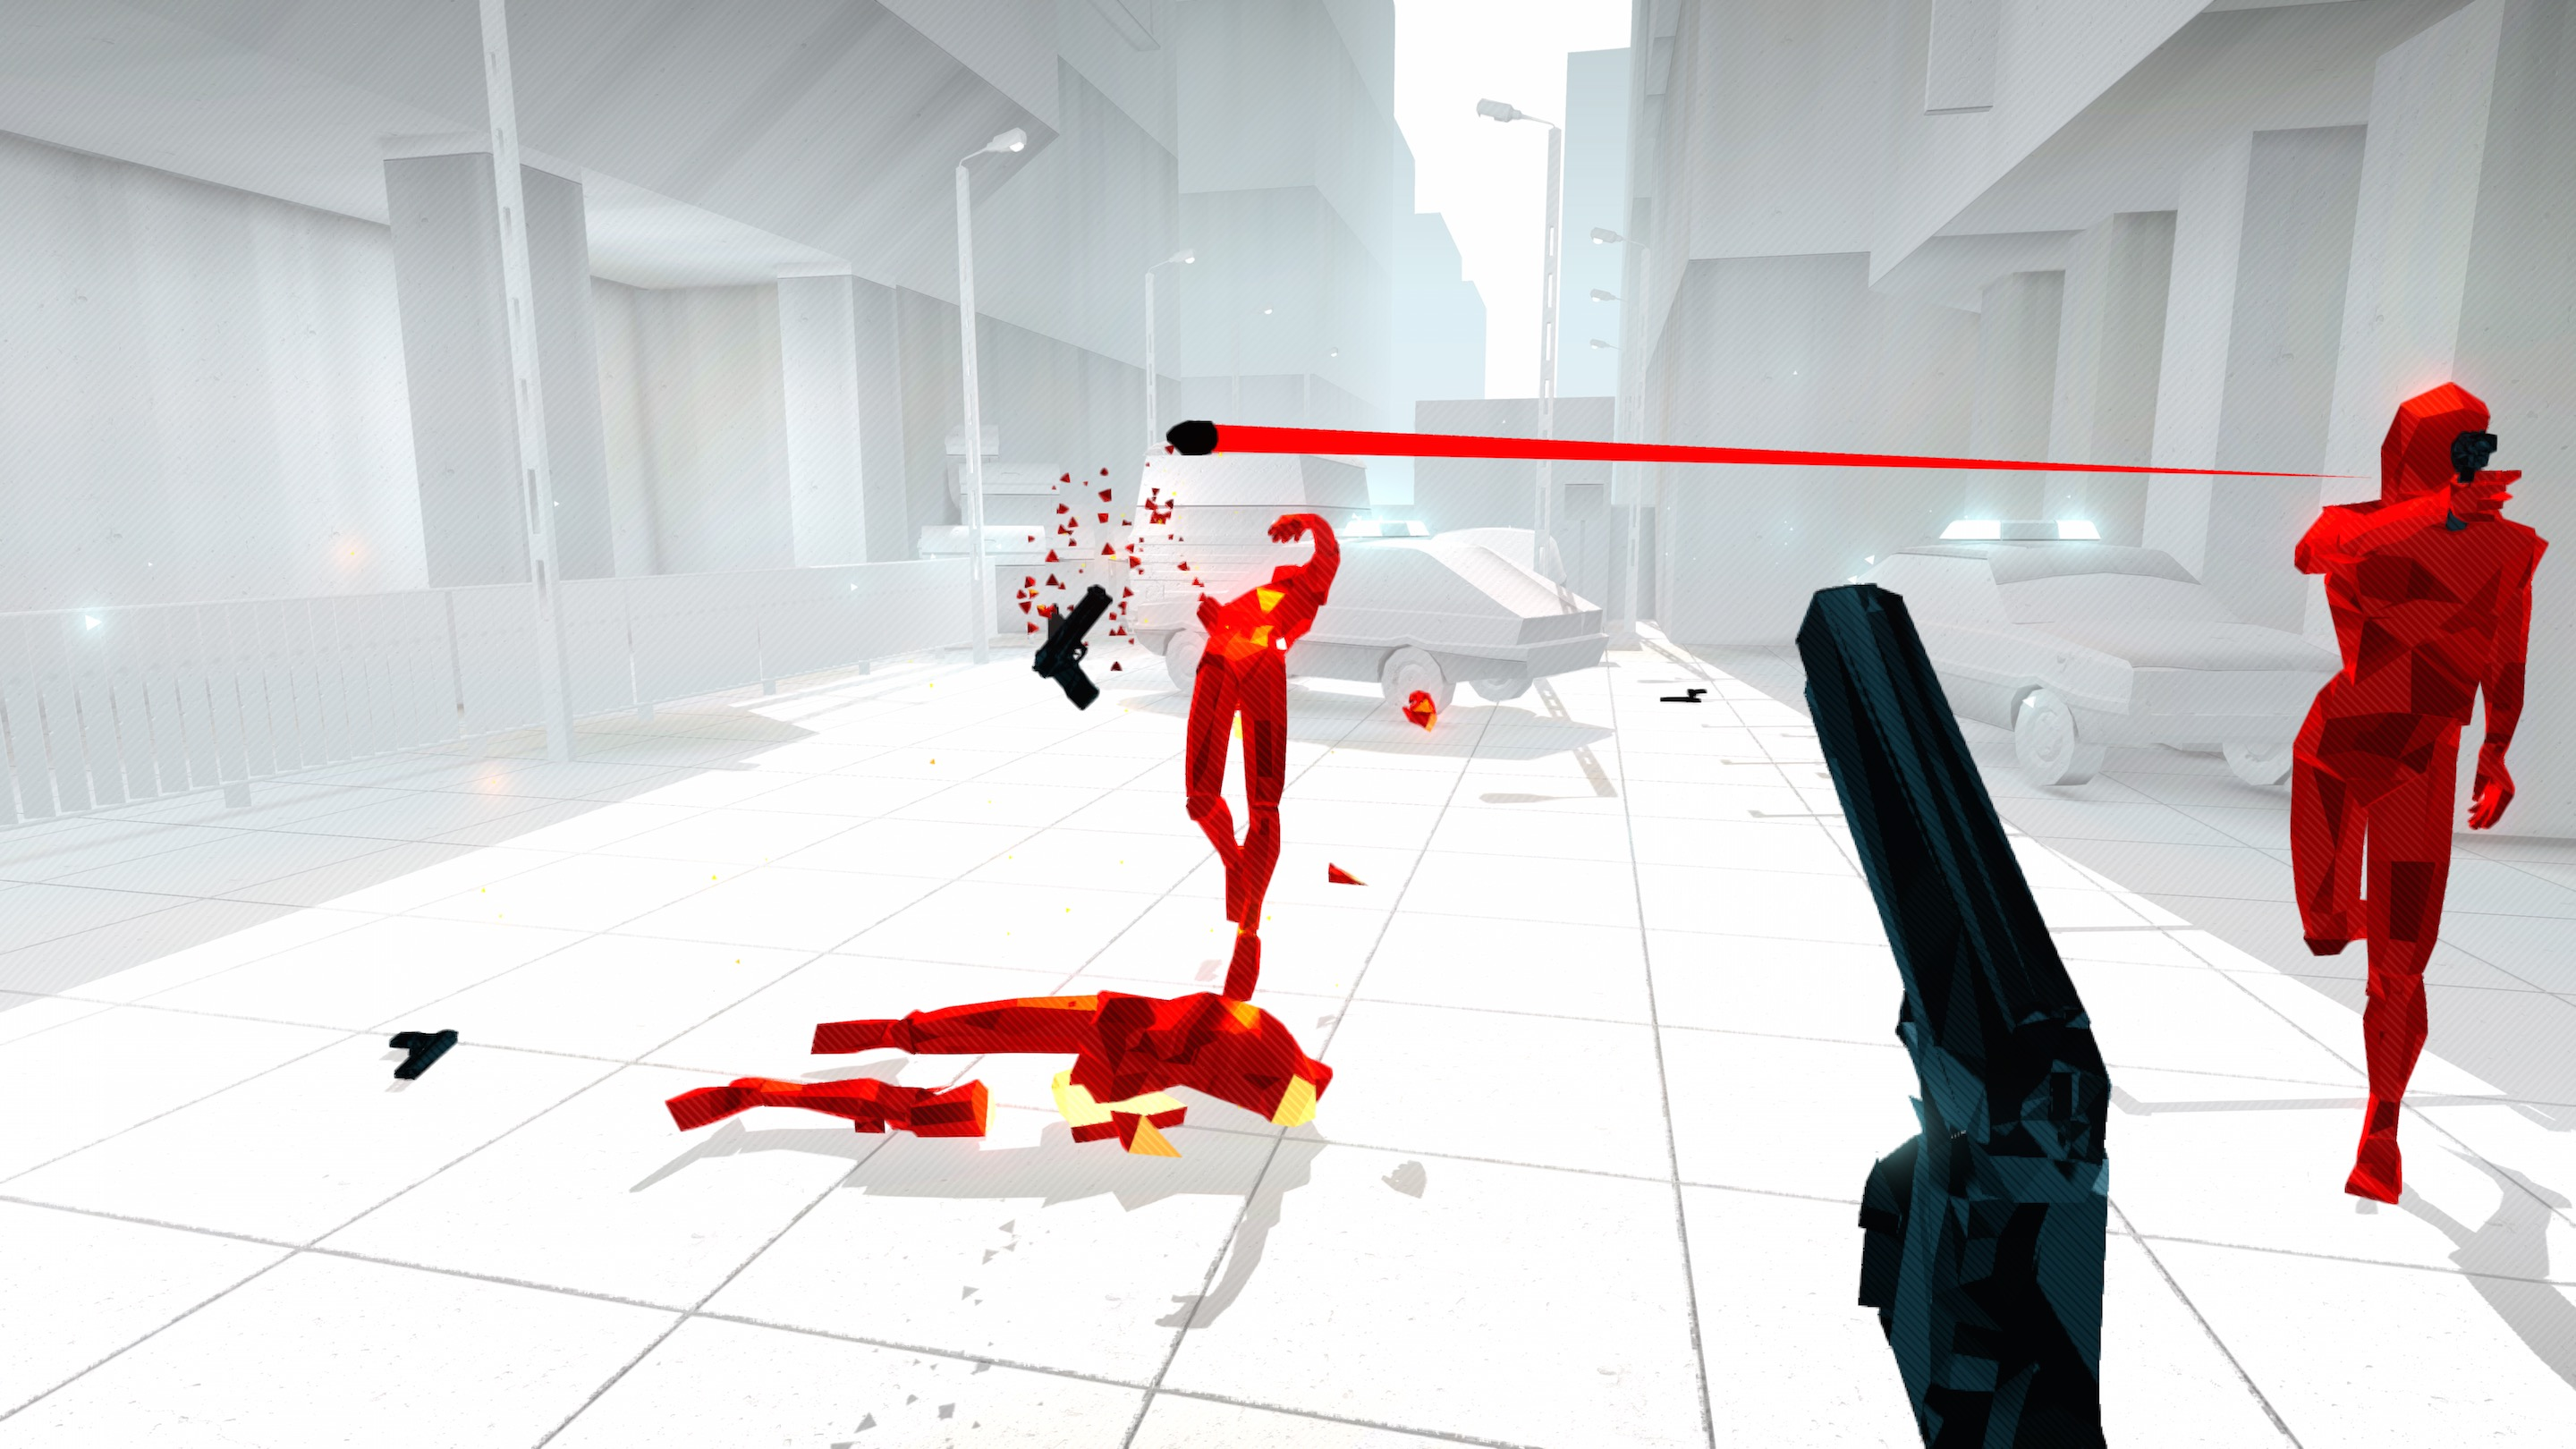 Superhot a first person shooter coming to Linux, Mac and Windows.